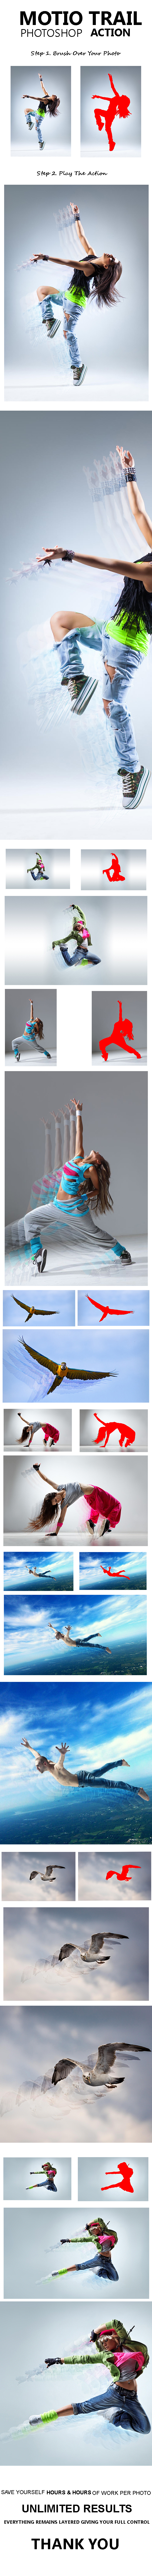 GraphicRiver Motion Trail Photoshop Action 20939238